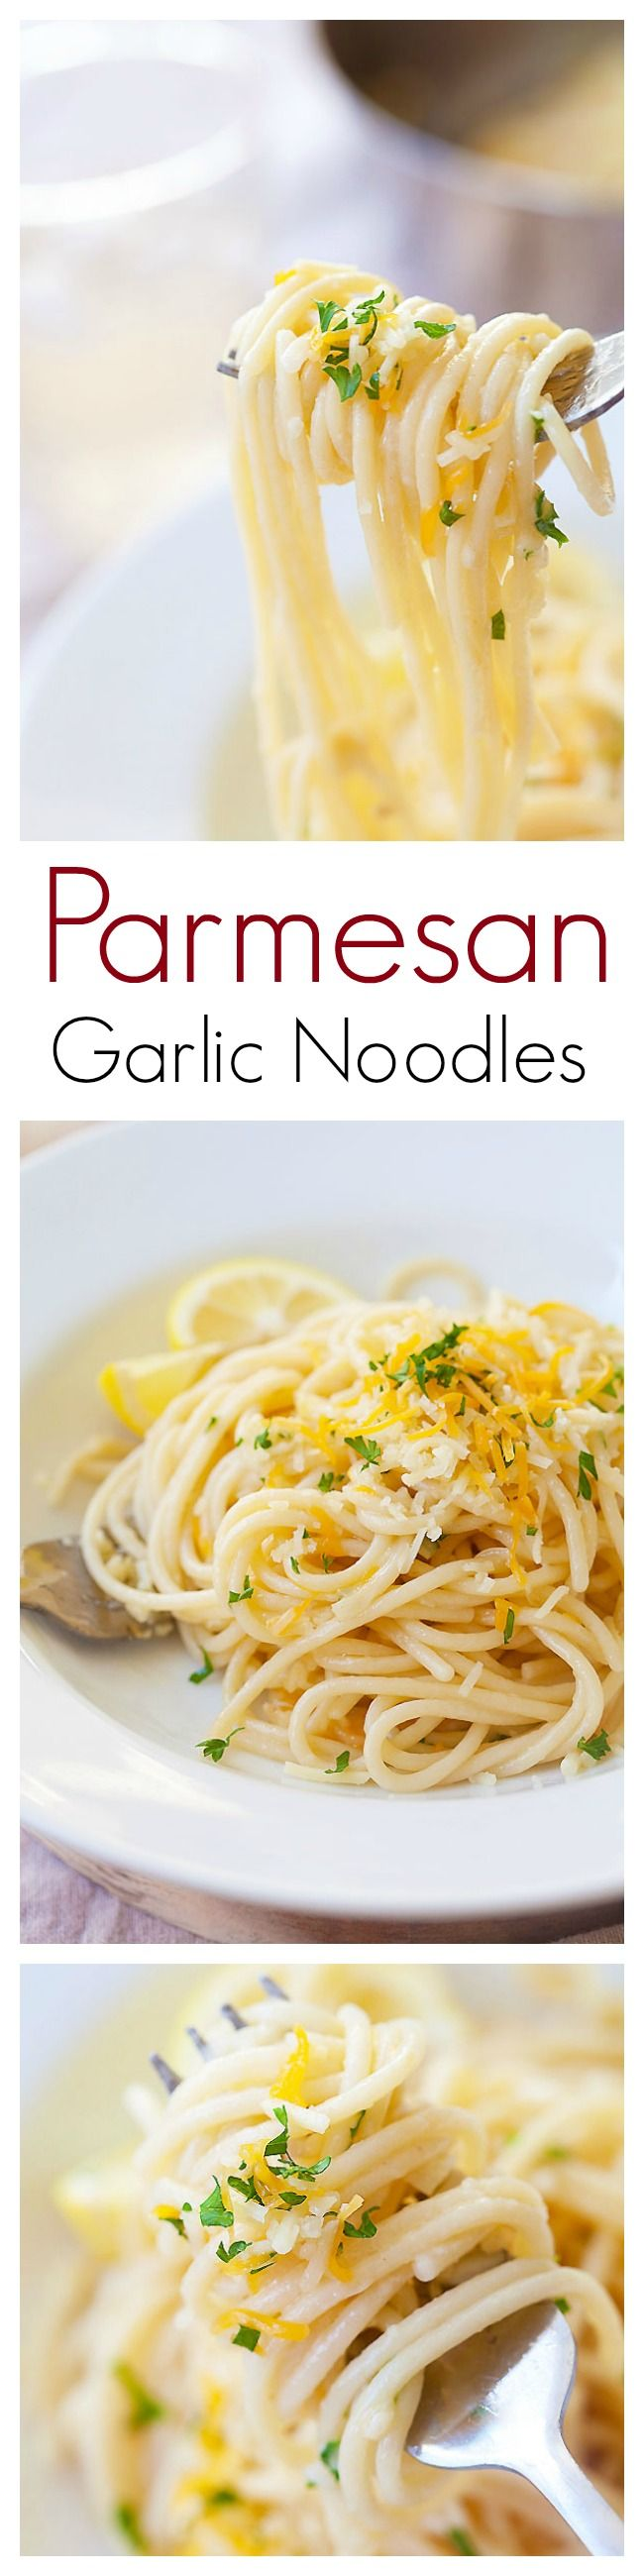 Quick and easy Parmesan Garlic Noodles with garlic and Parmesan cheese. ( u must try! )